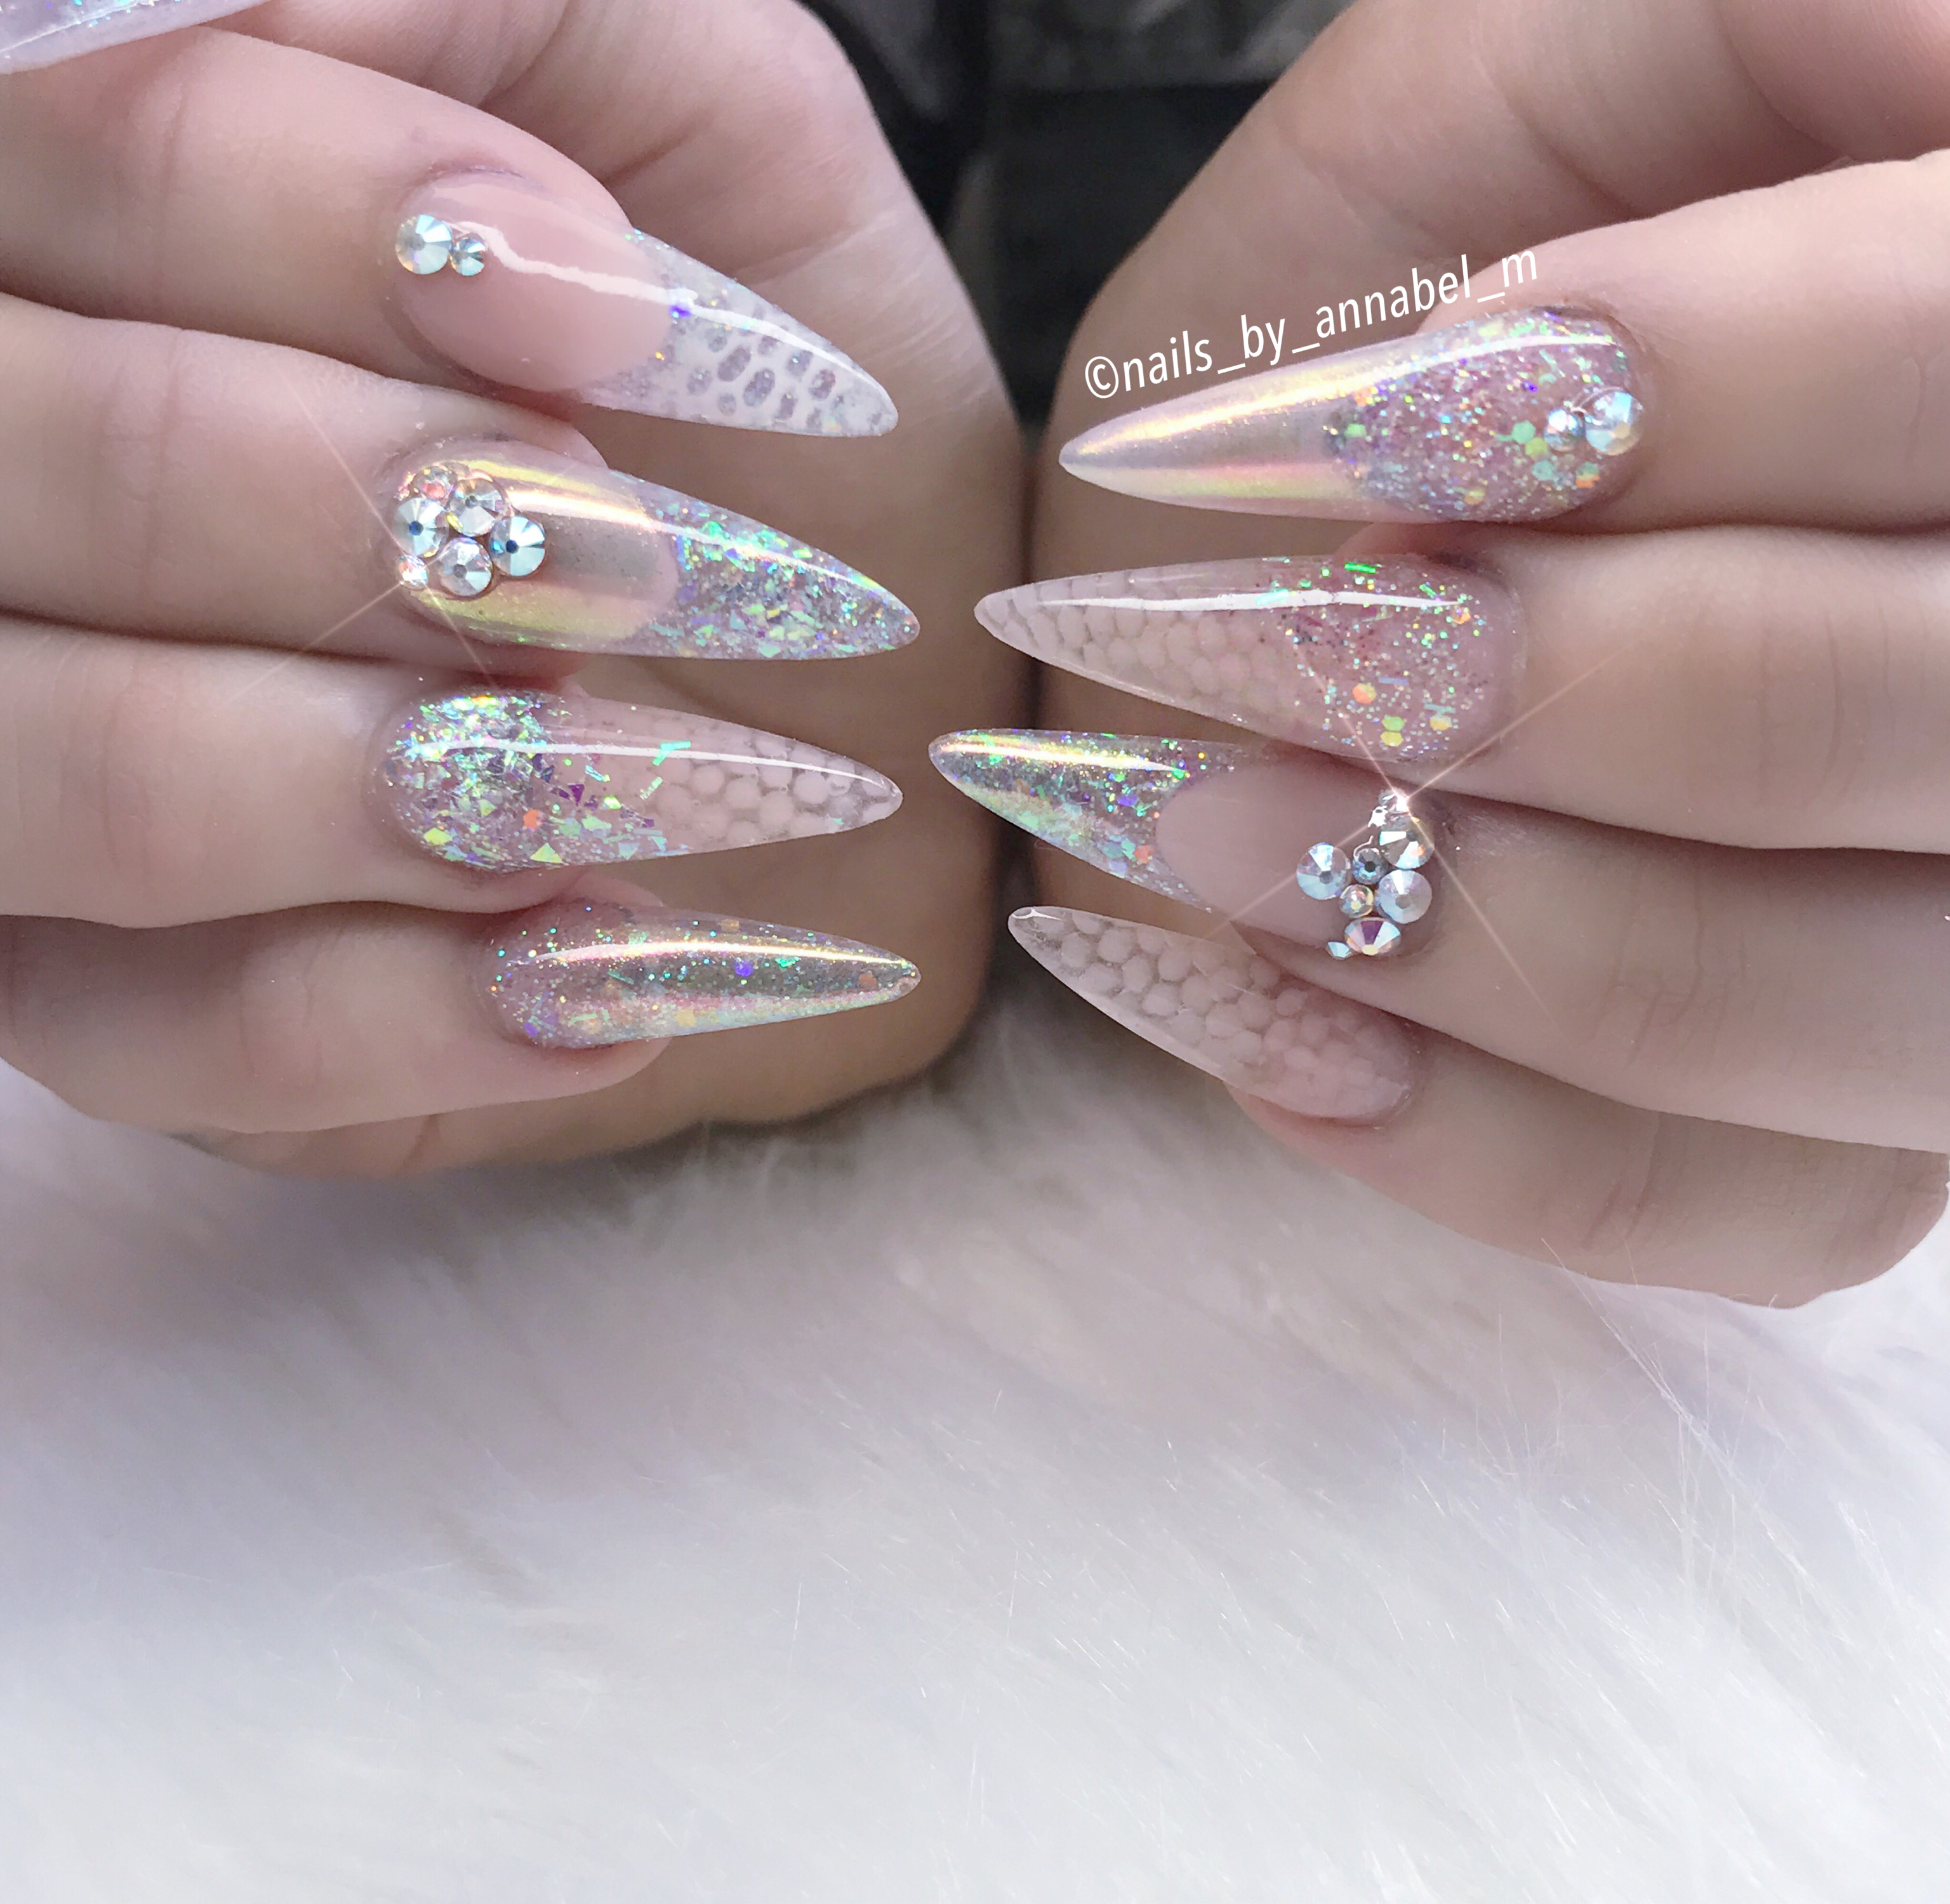 nails_by_annabel_m on instagram Products from www.nailsbyannabel.co ...